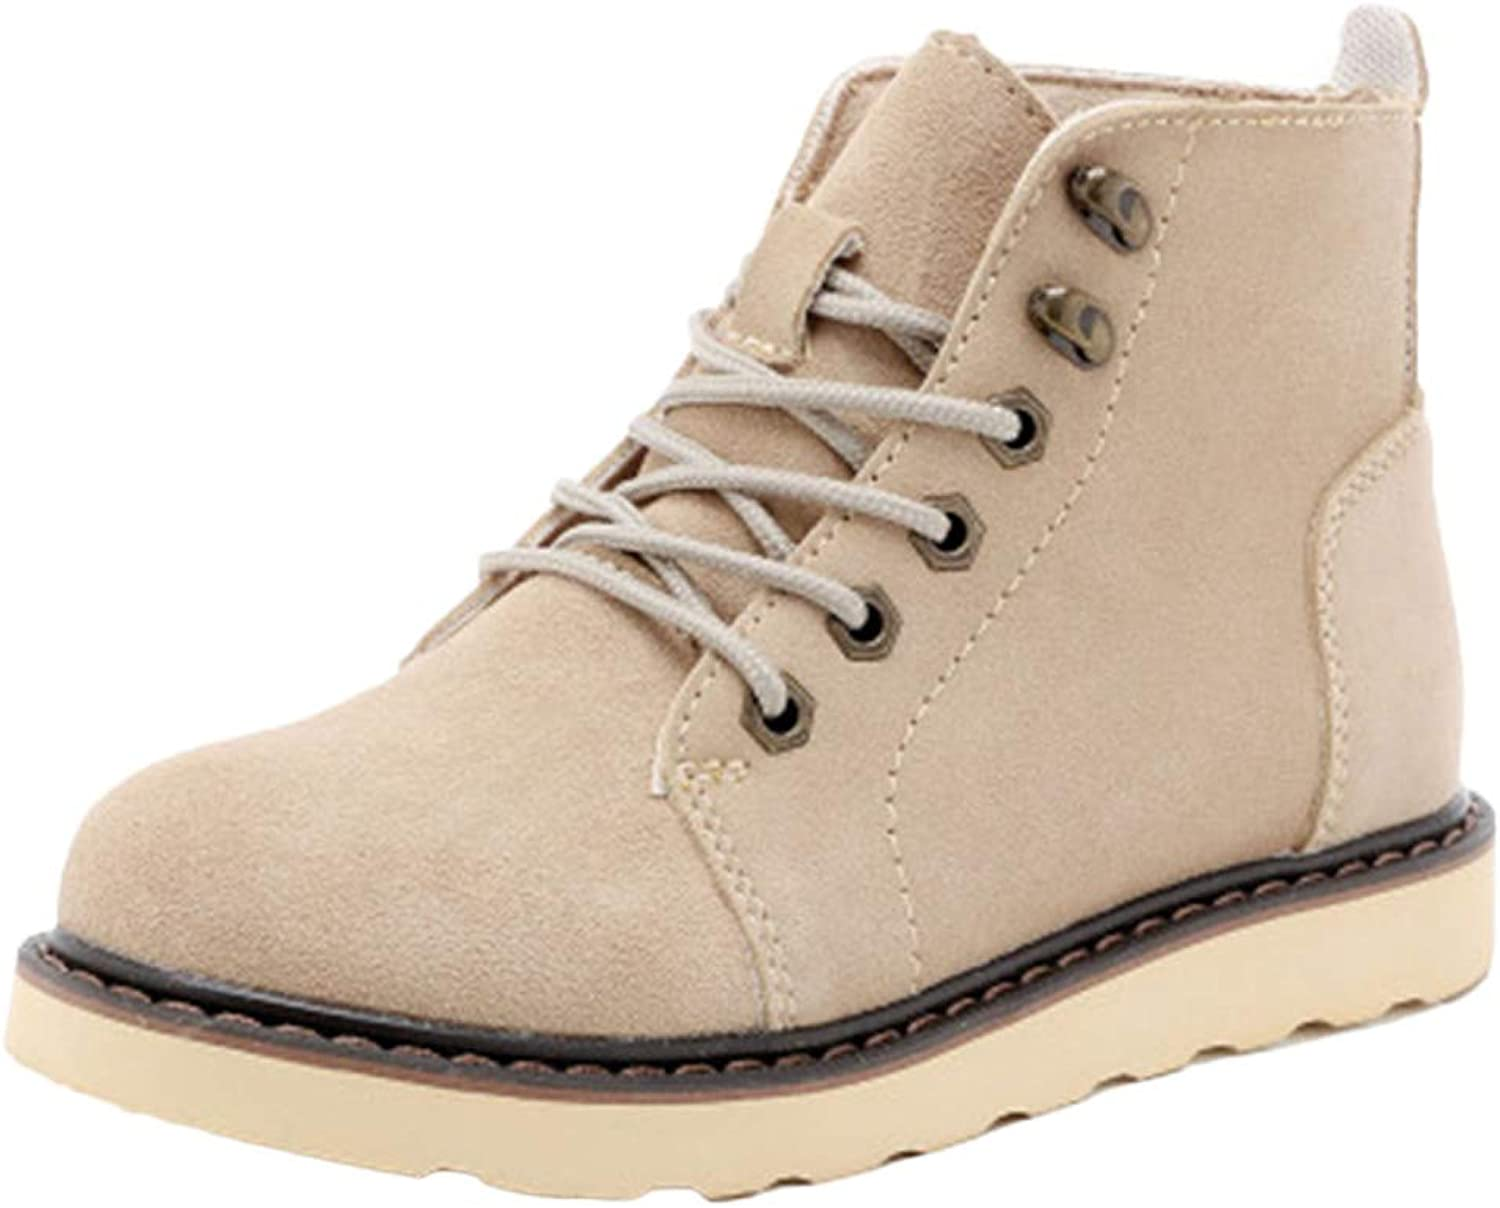 Men's Boots Work Boots Waterproof Trainers shoes Booties Military Desert